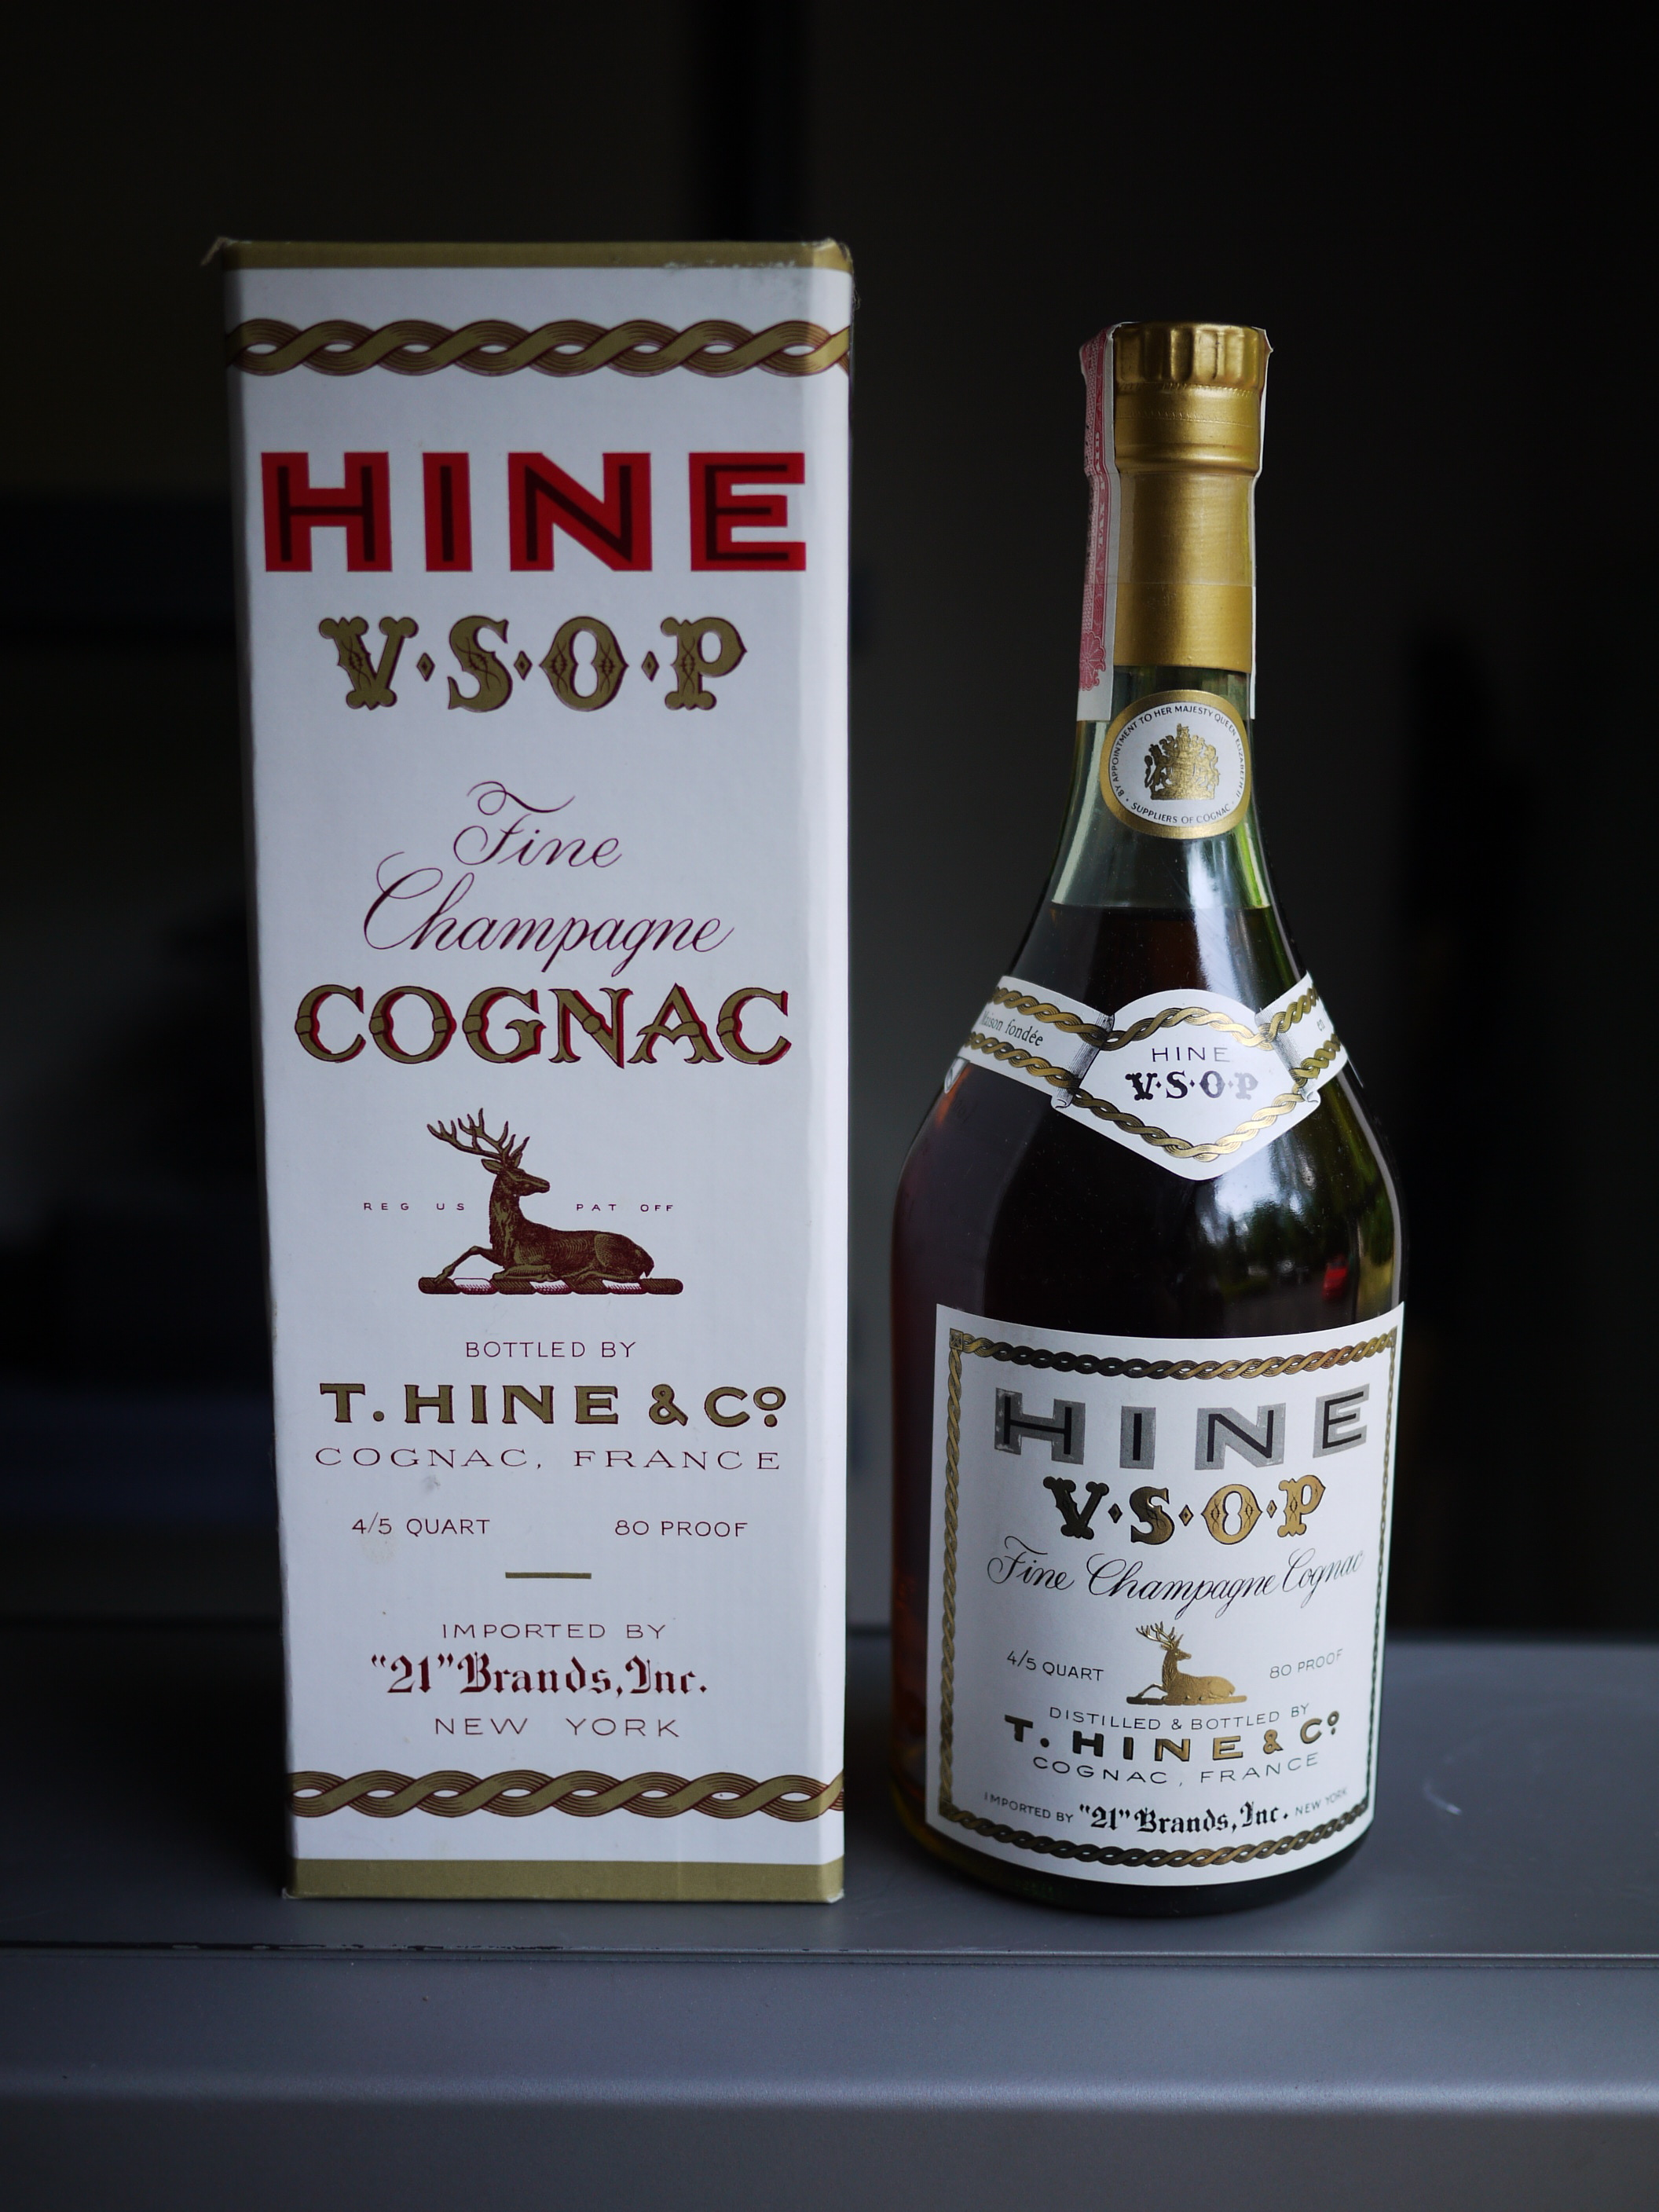 New York imported Hine VSOP Fine Champagne Cognac